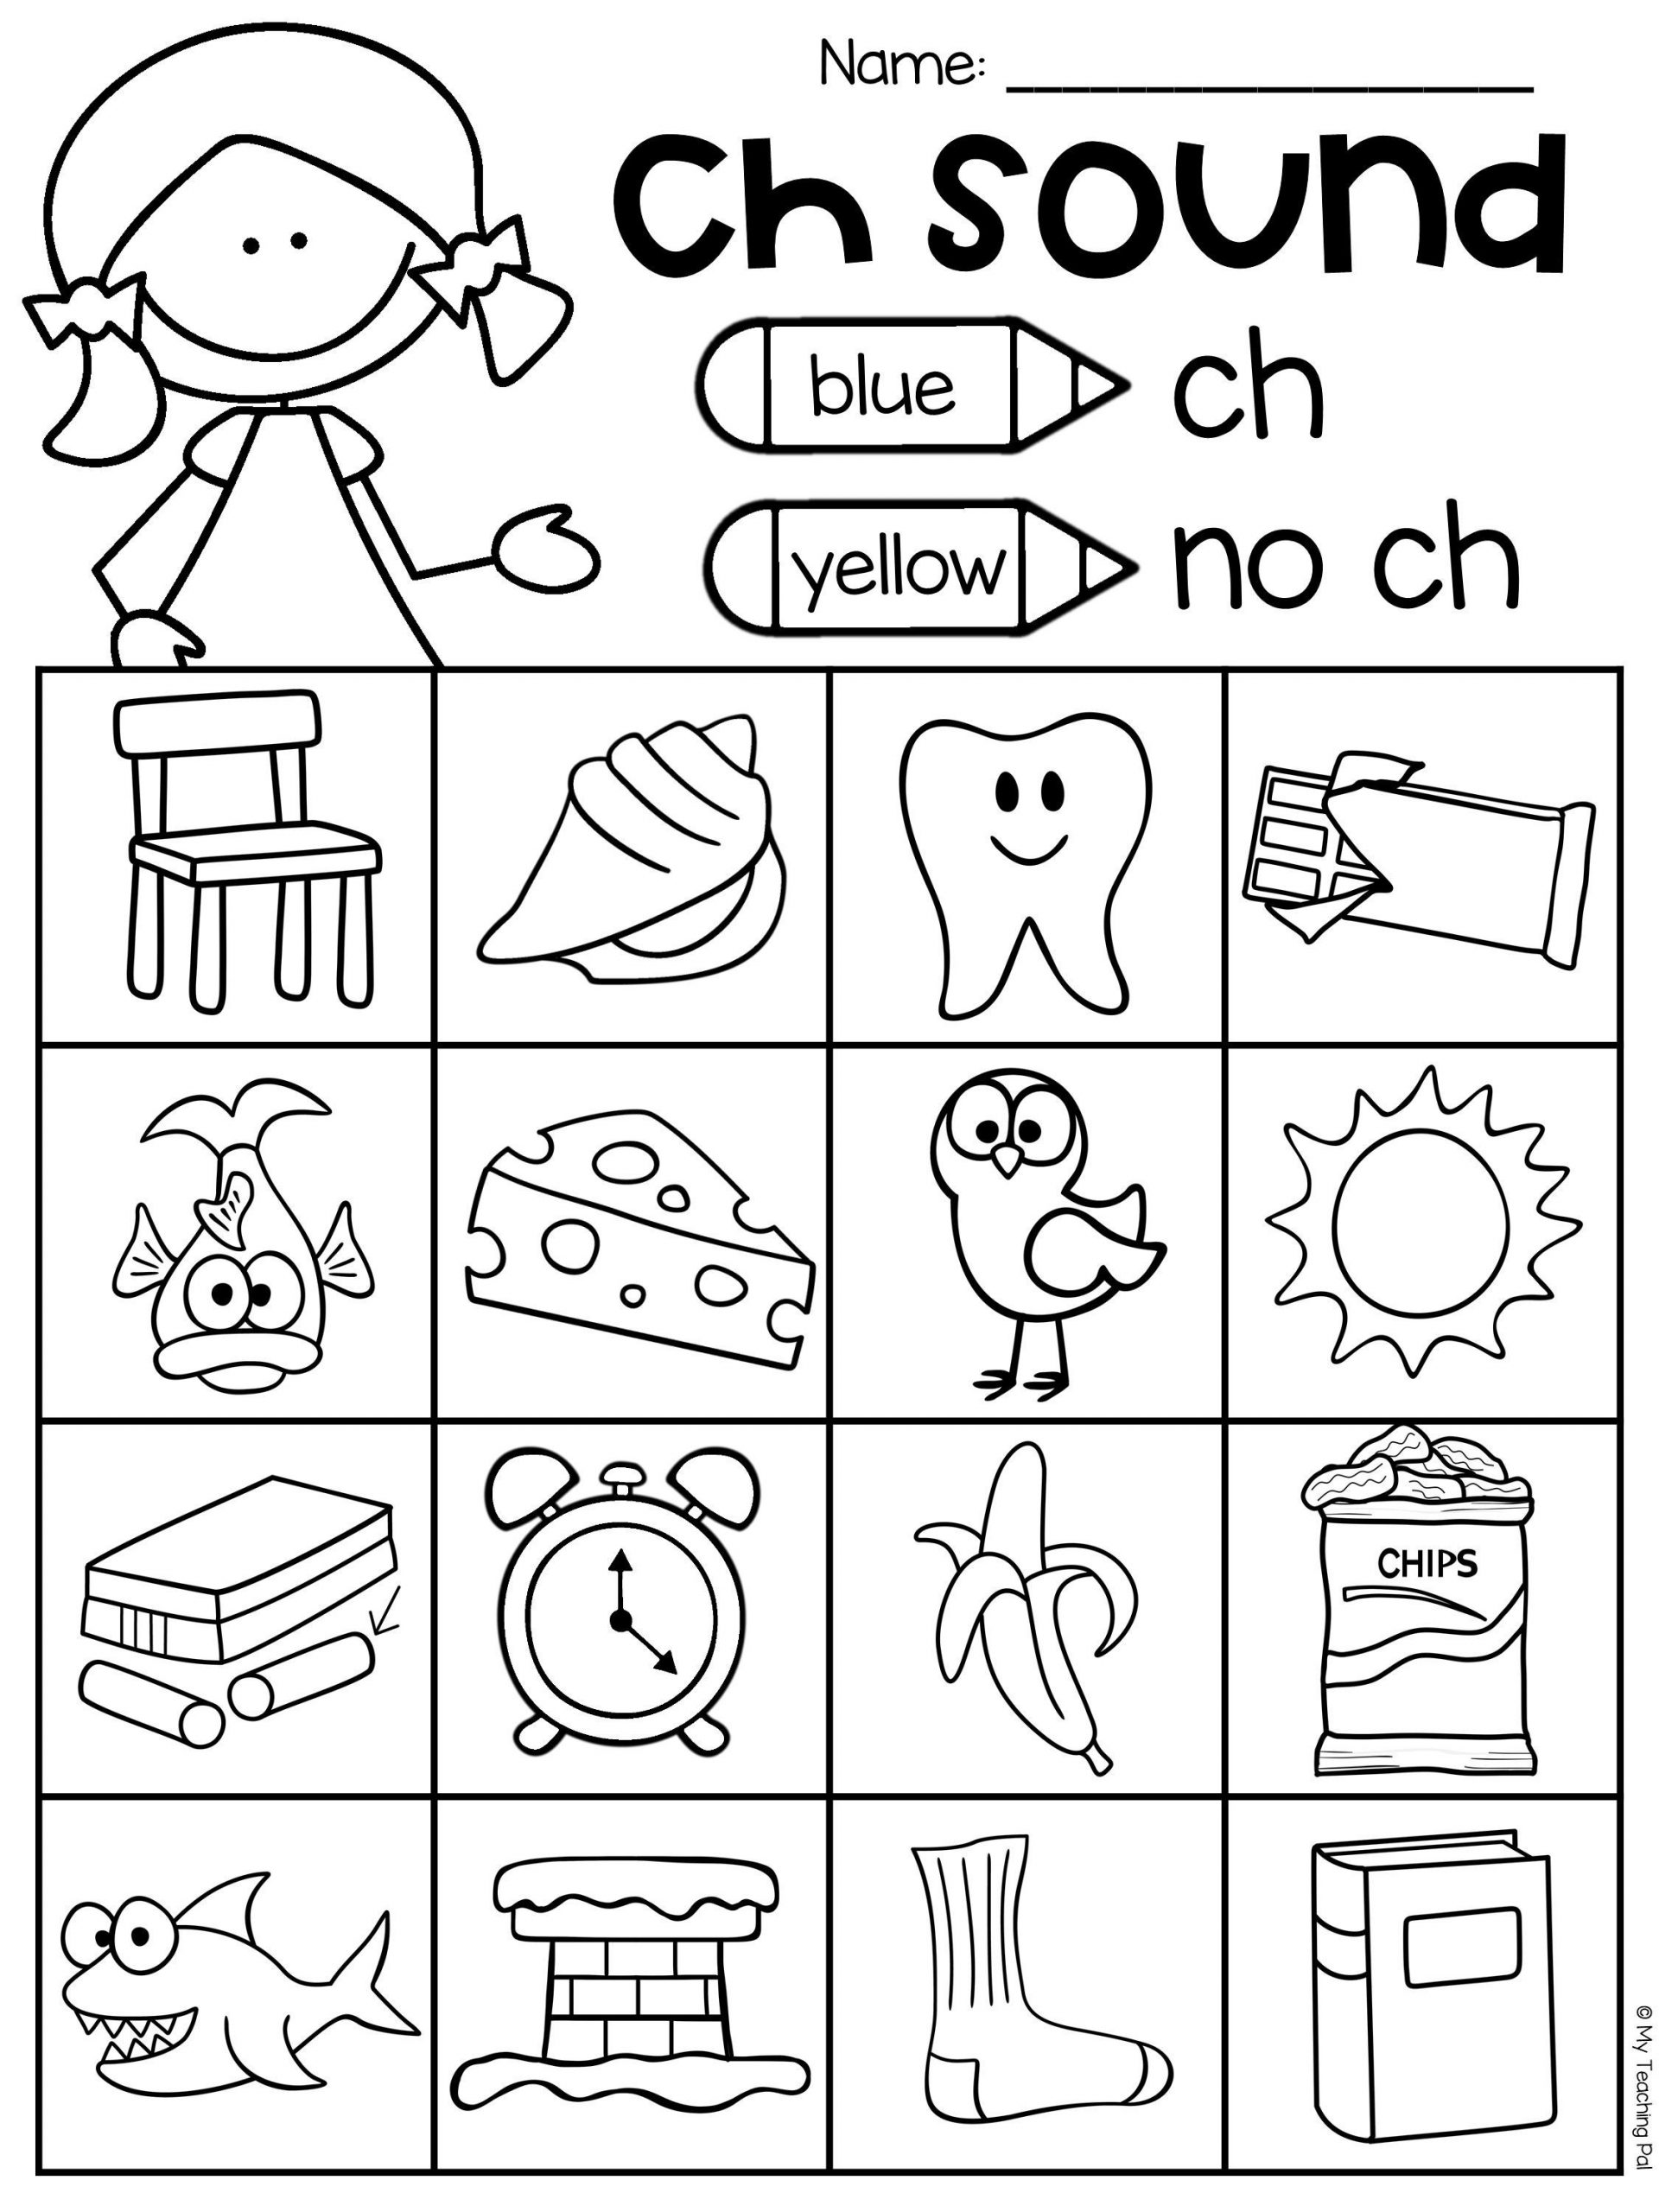 Digraph Worksheets for First Grade Ch Worksheet Packet Digraphs Worksheets